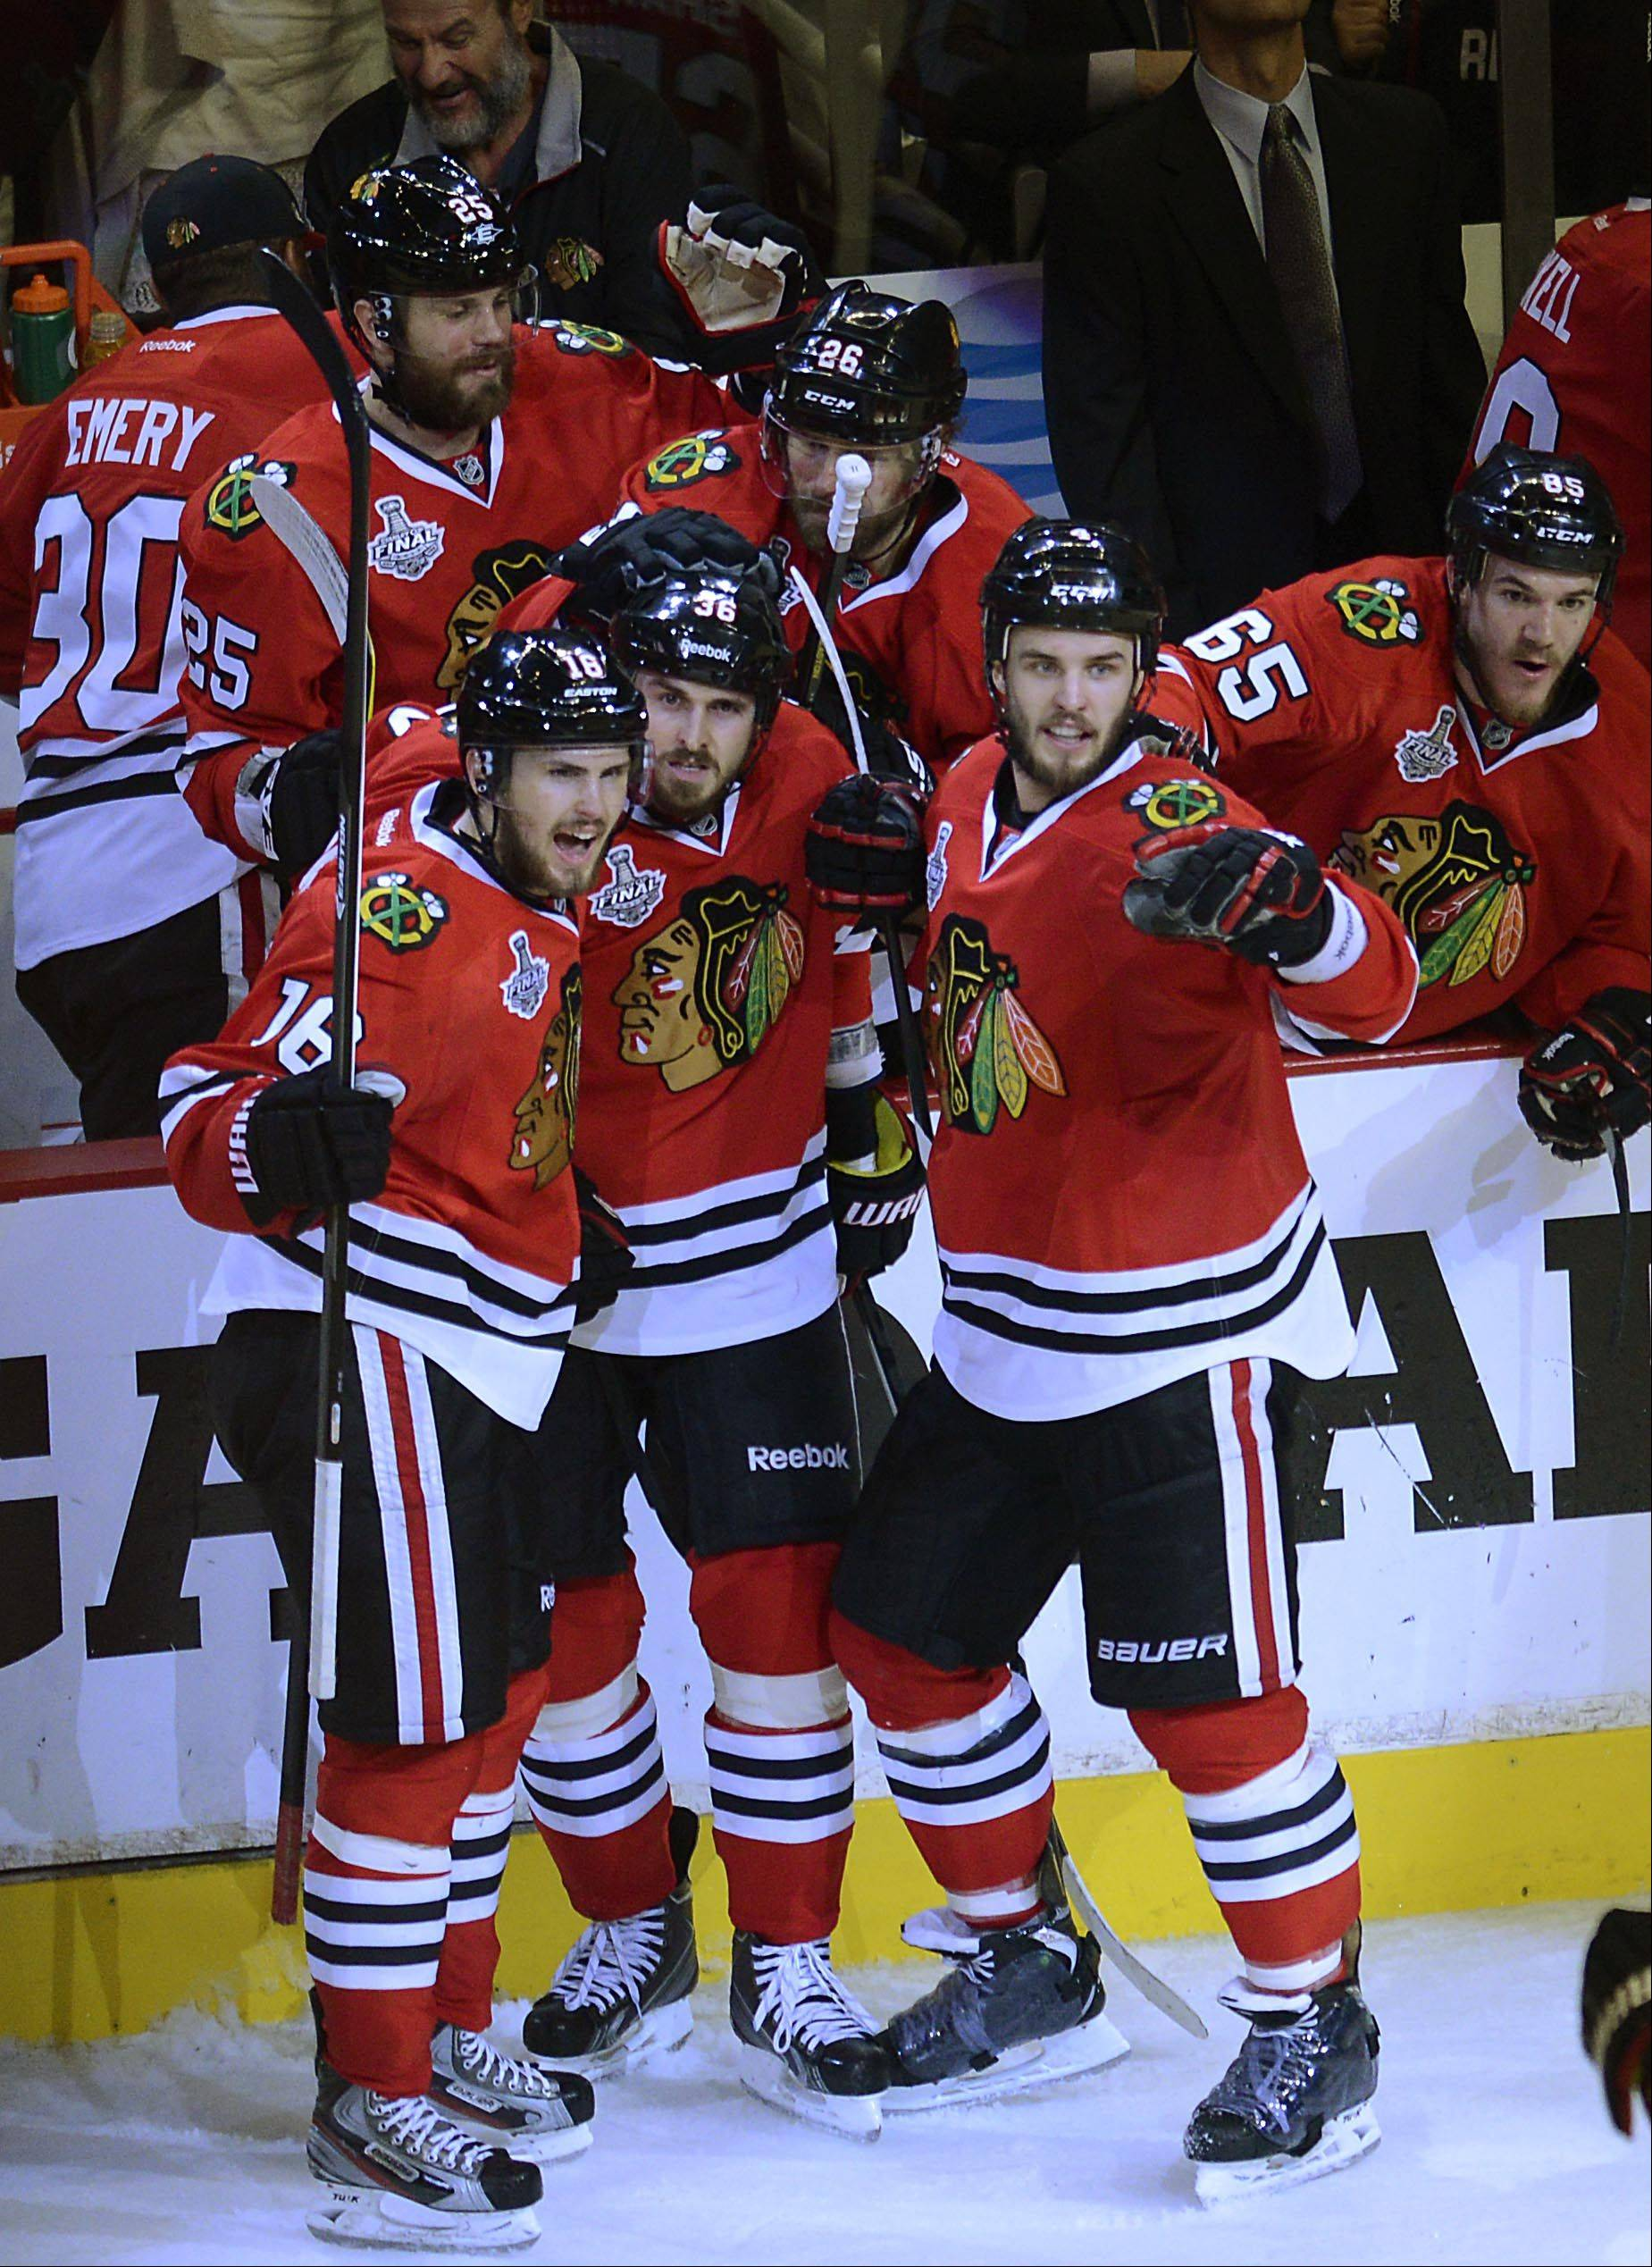 Bolland, Hawks ready for a memorable return